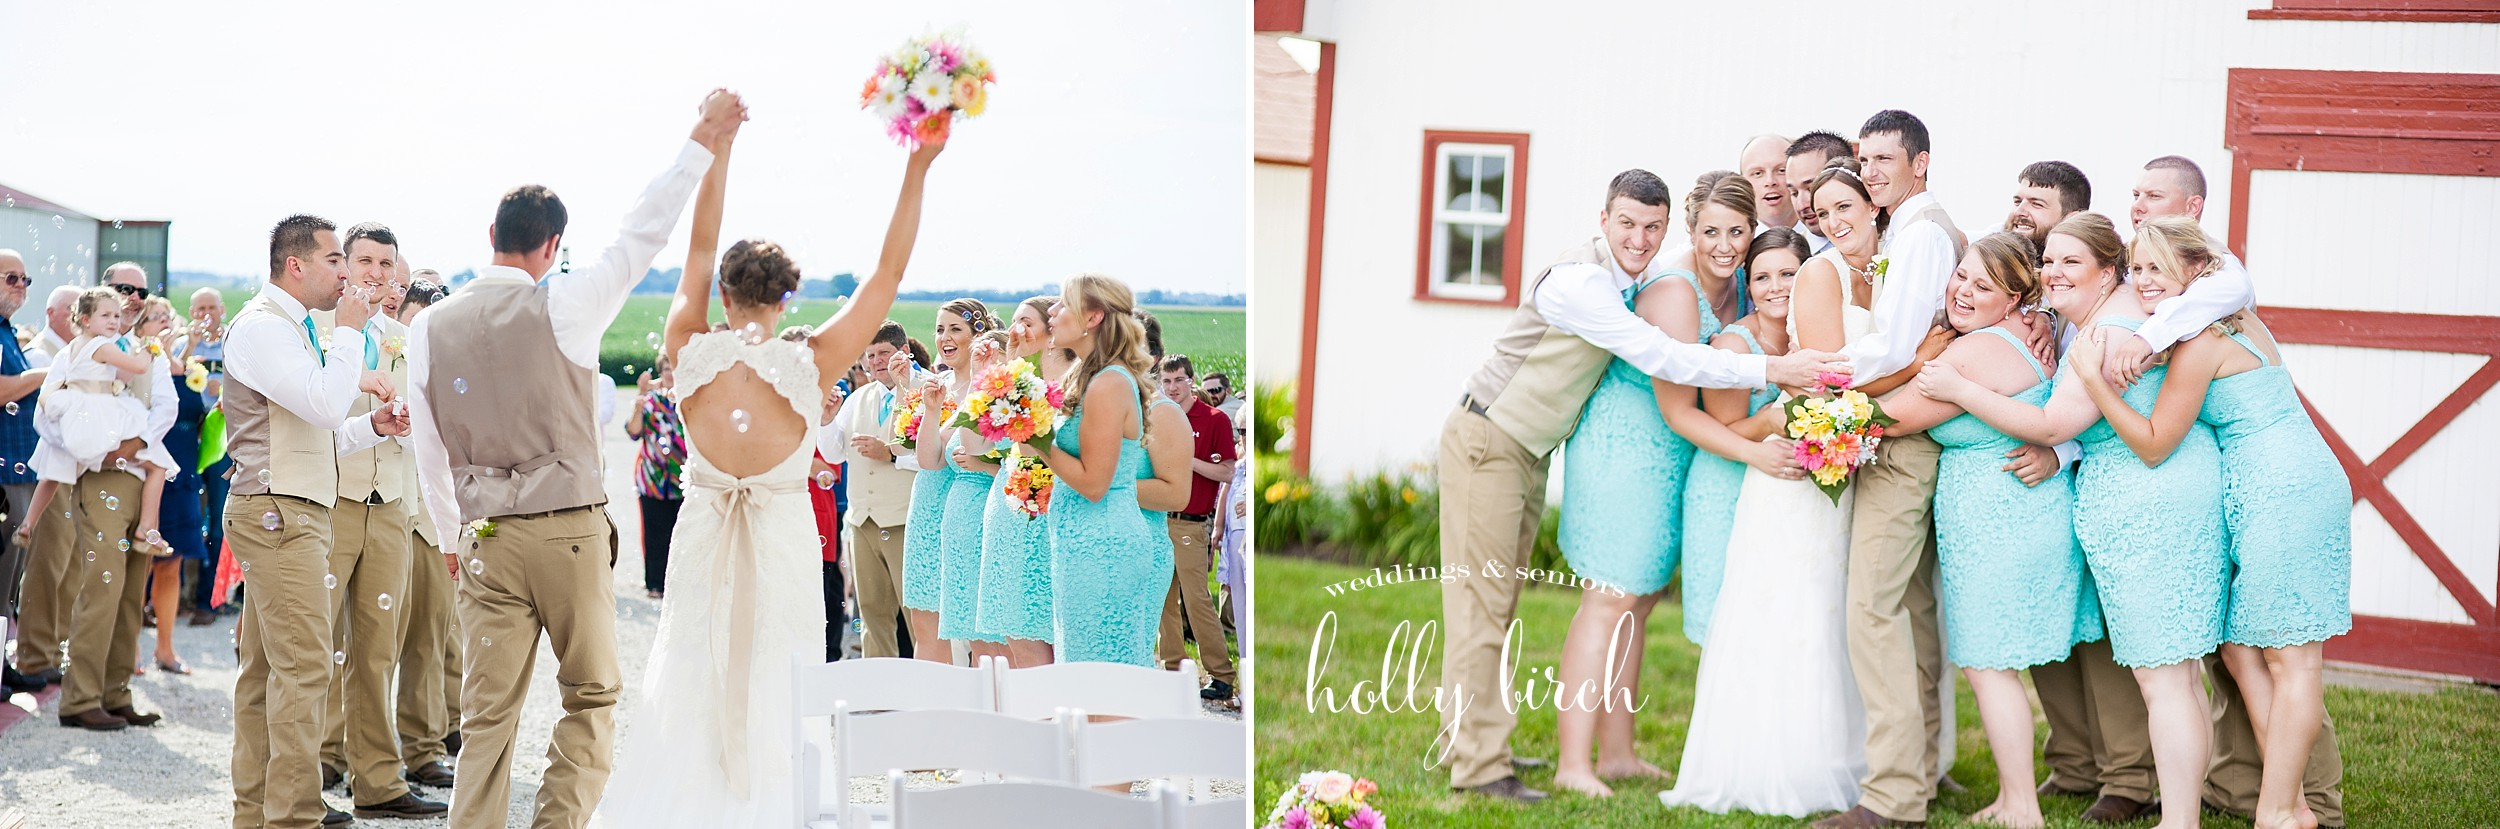 candid country wedding pictures